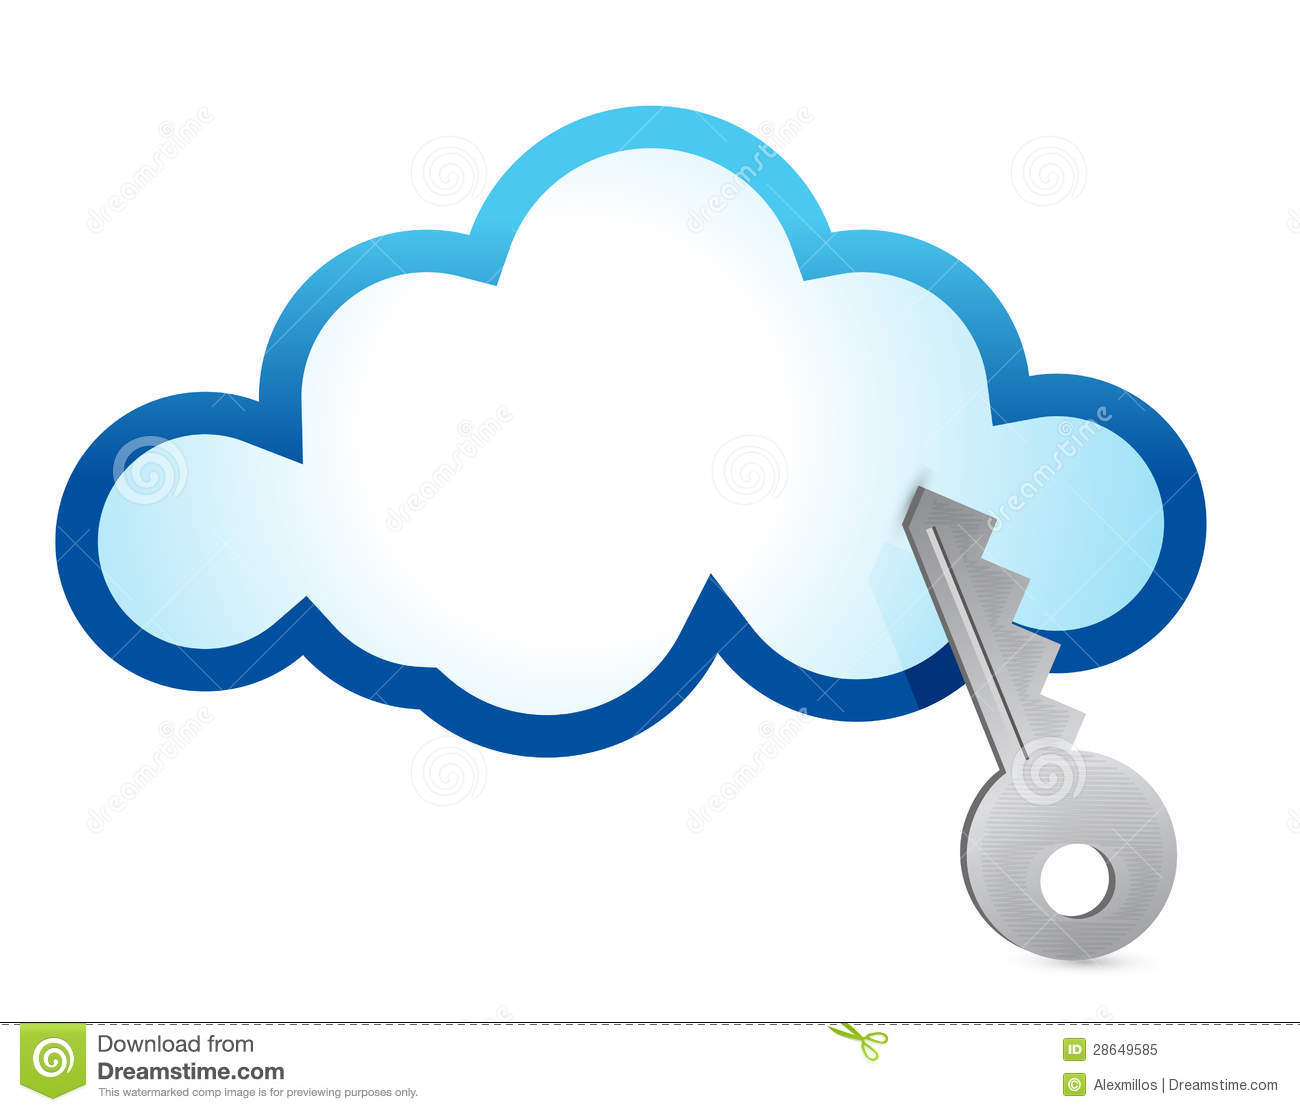 Storage security in cloud computing ppt quimica